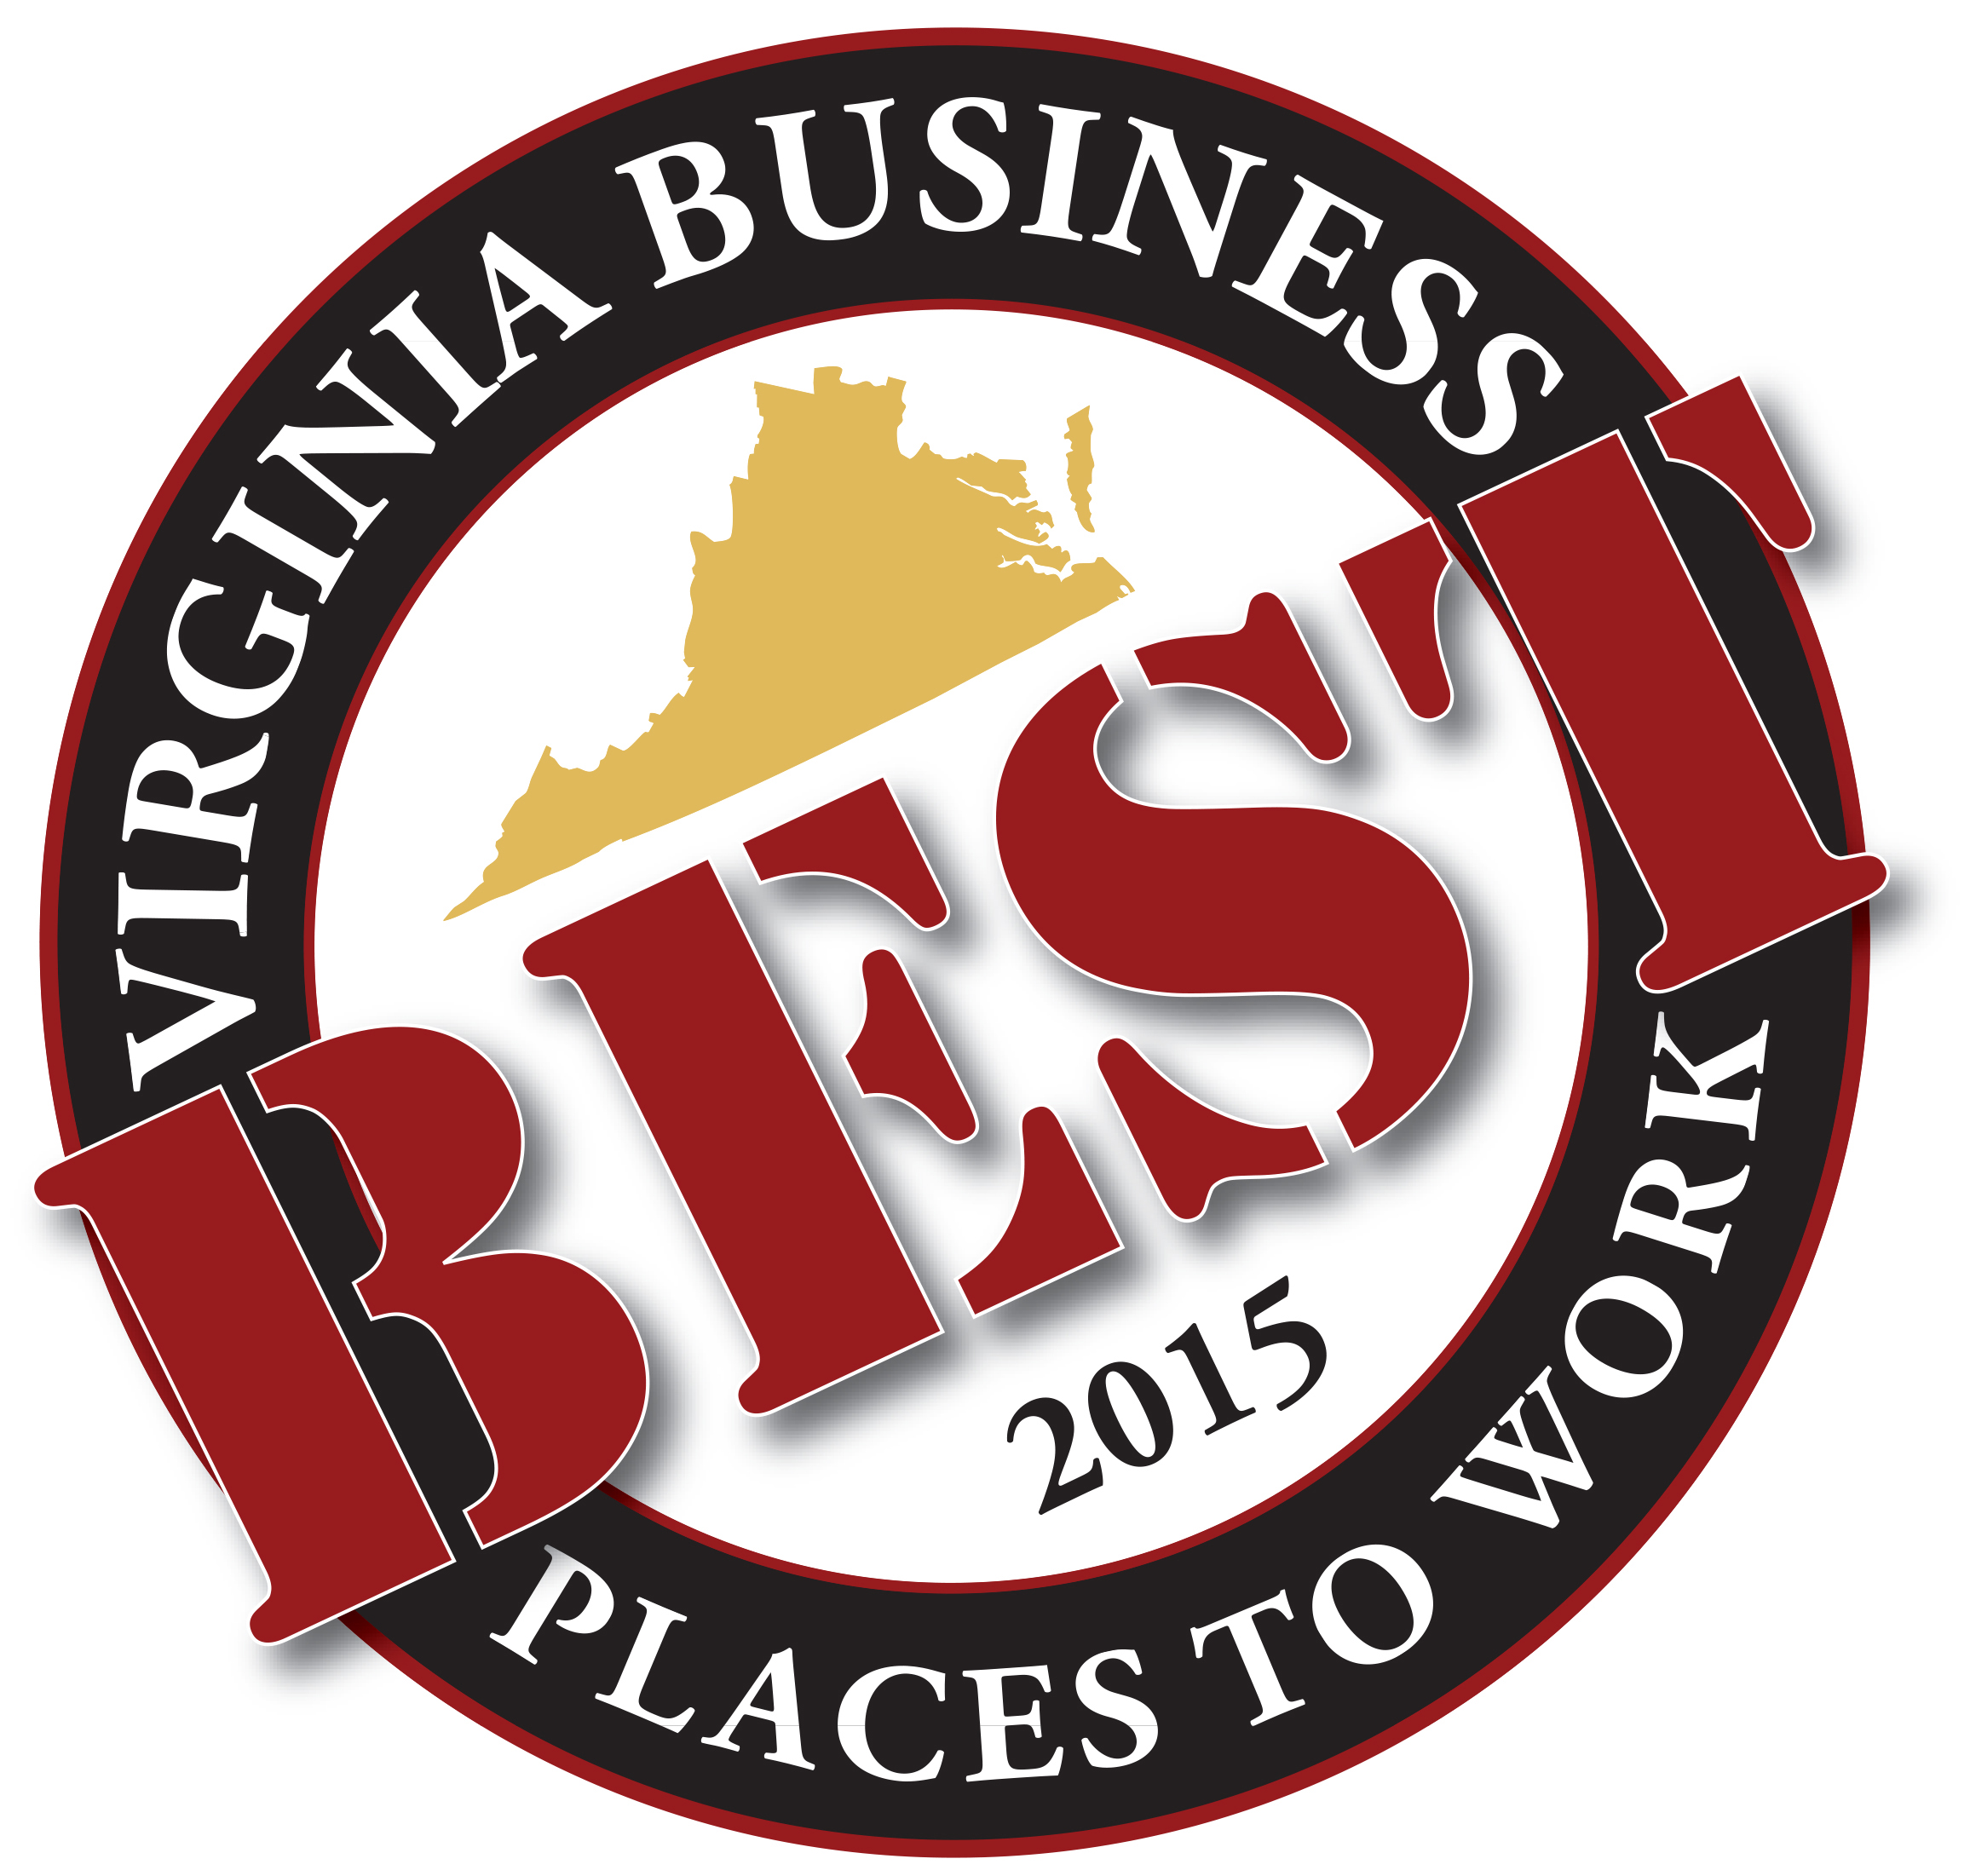 2014 Virginia Business Best Places to Work